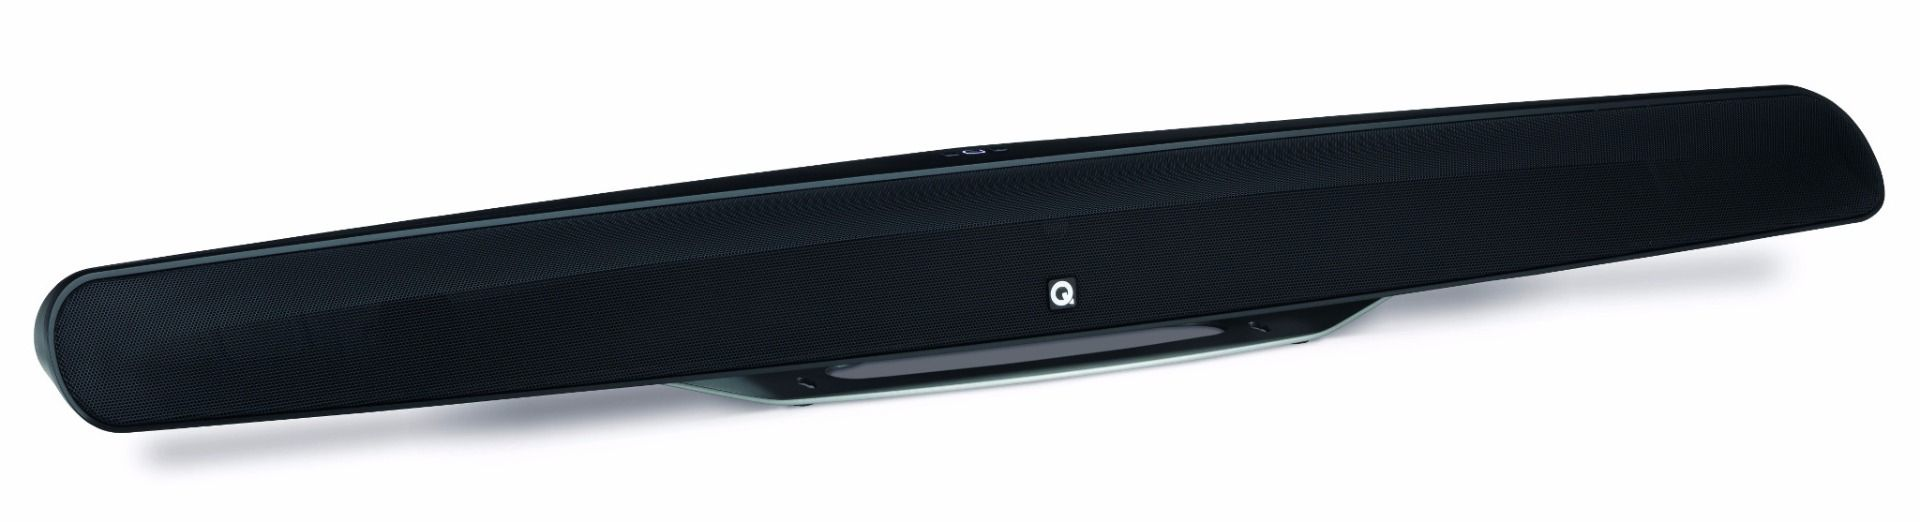 Q-ACOUSTICS M3 SOUNDBAR HDMI